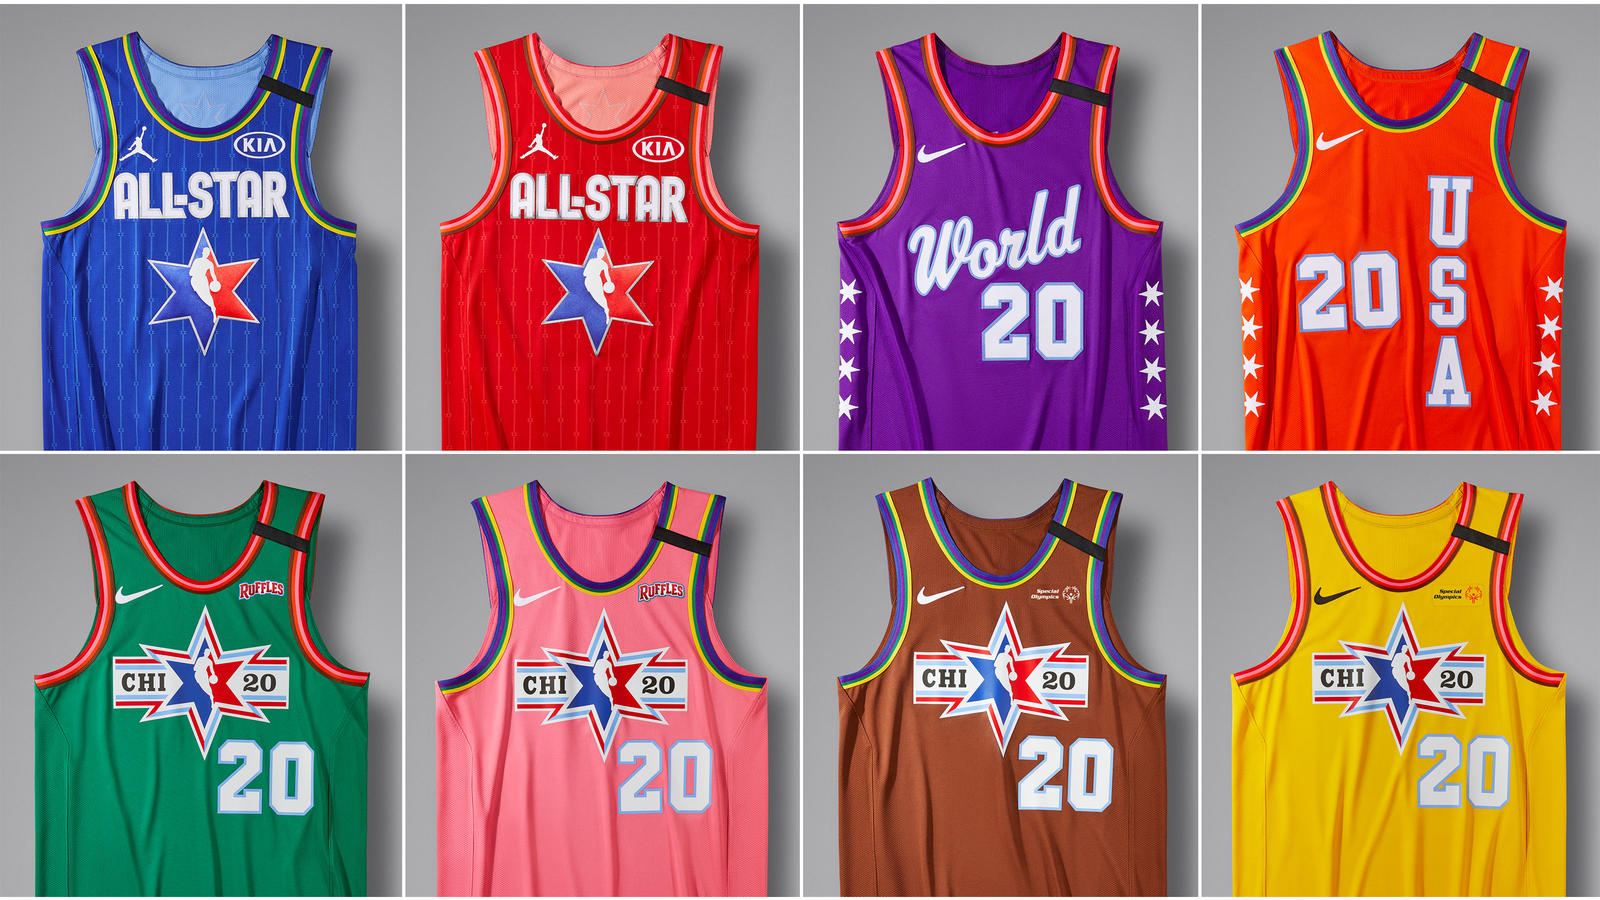 jordan-brand-and-nike-nba-all-star-2020-uniforms